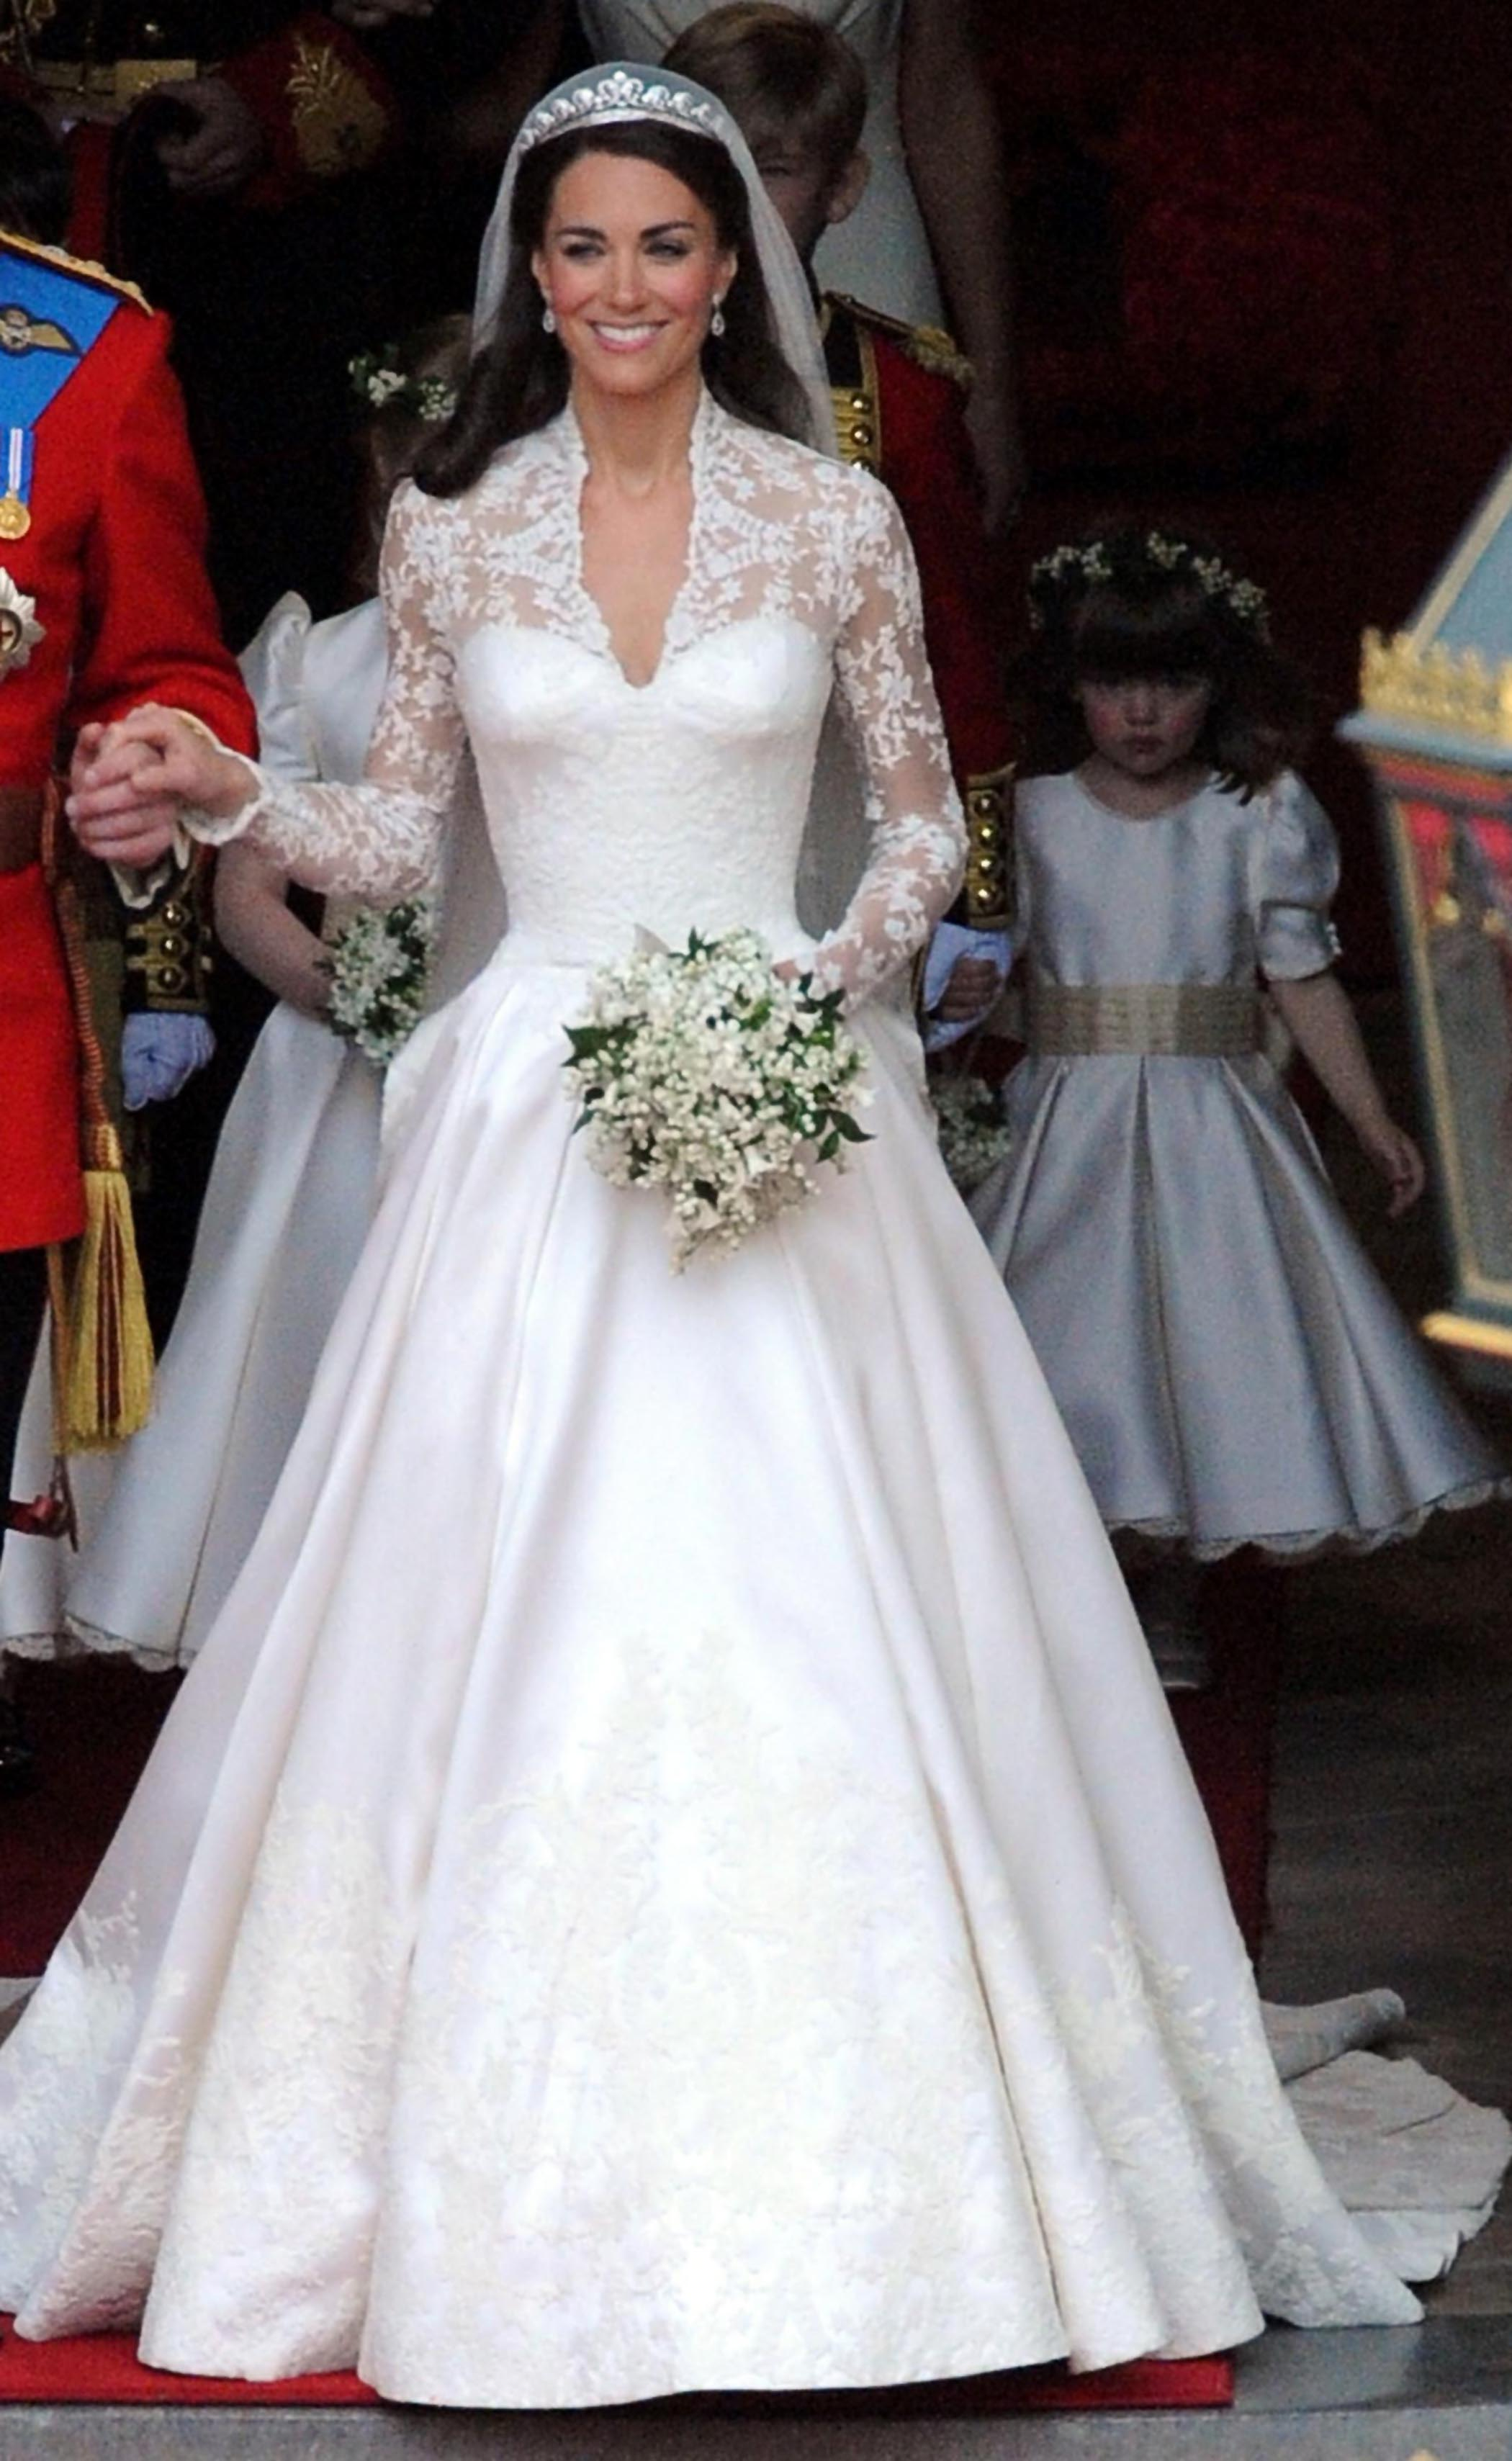 Iconic Wedding Dresses & their Iconic Spin-Offs | Fantastical ...